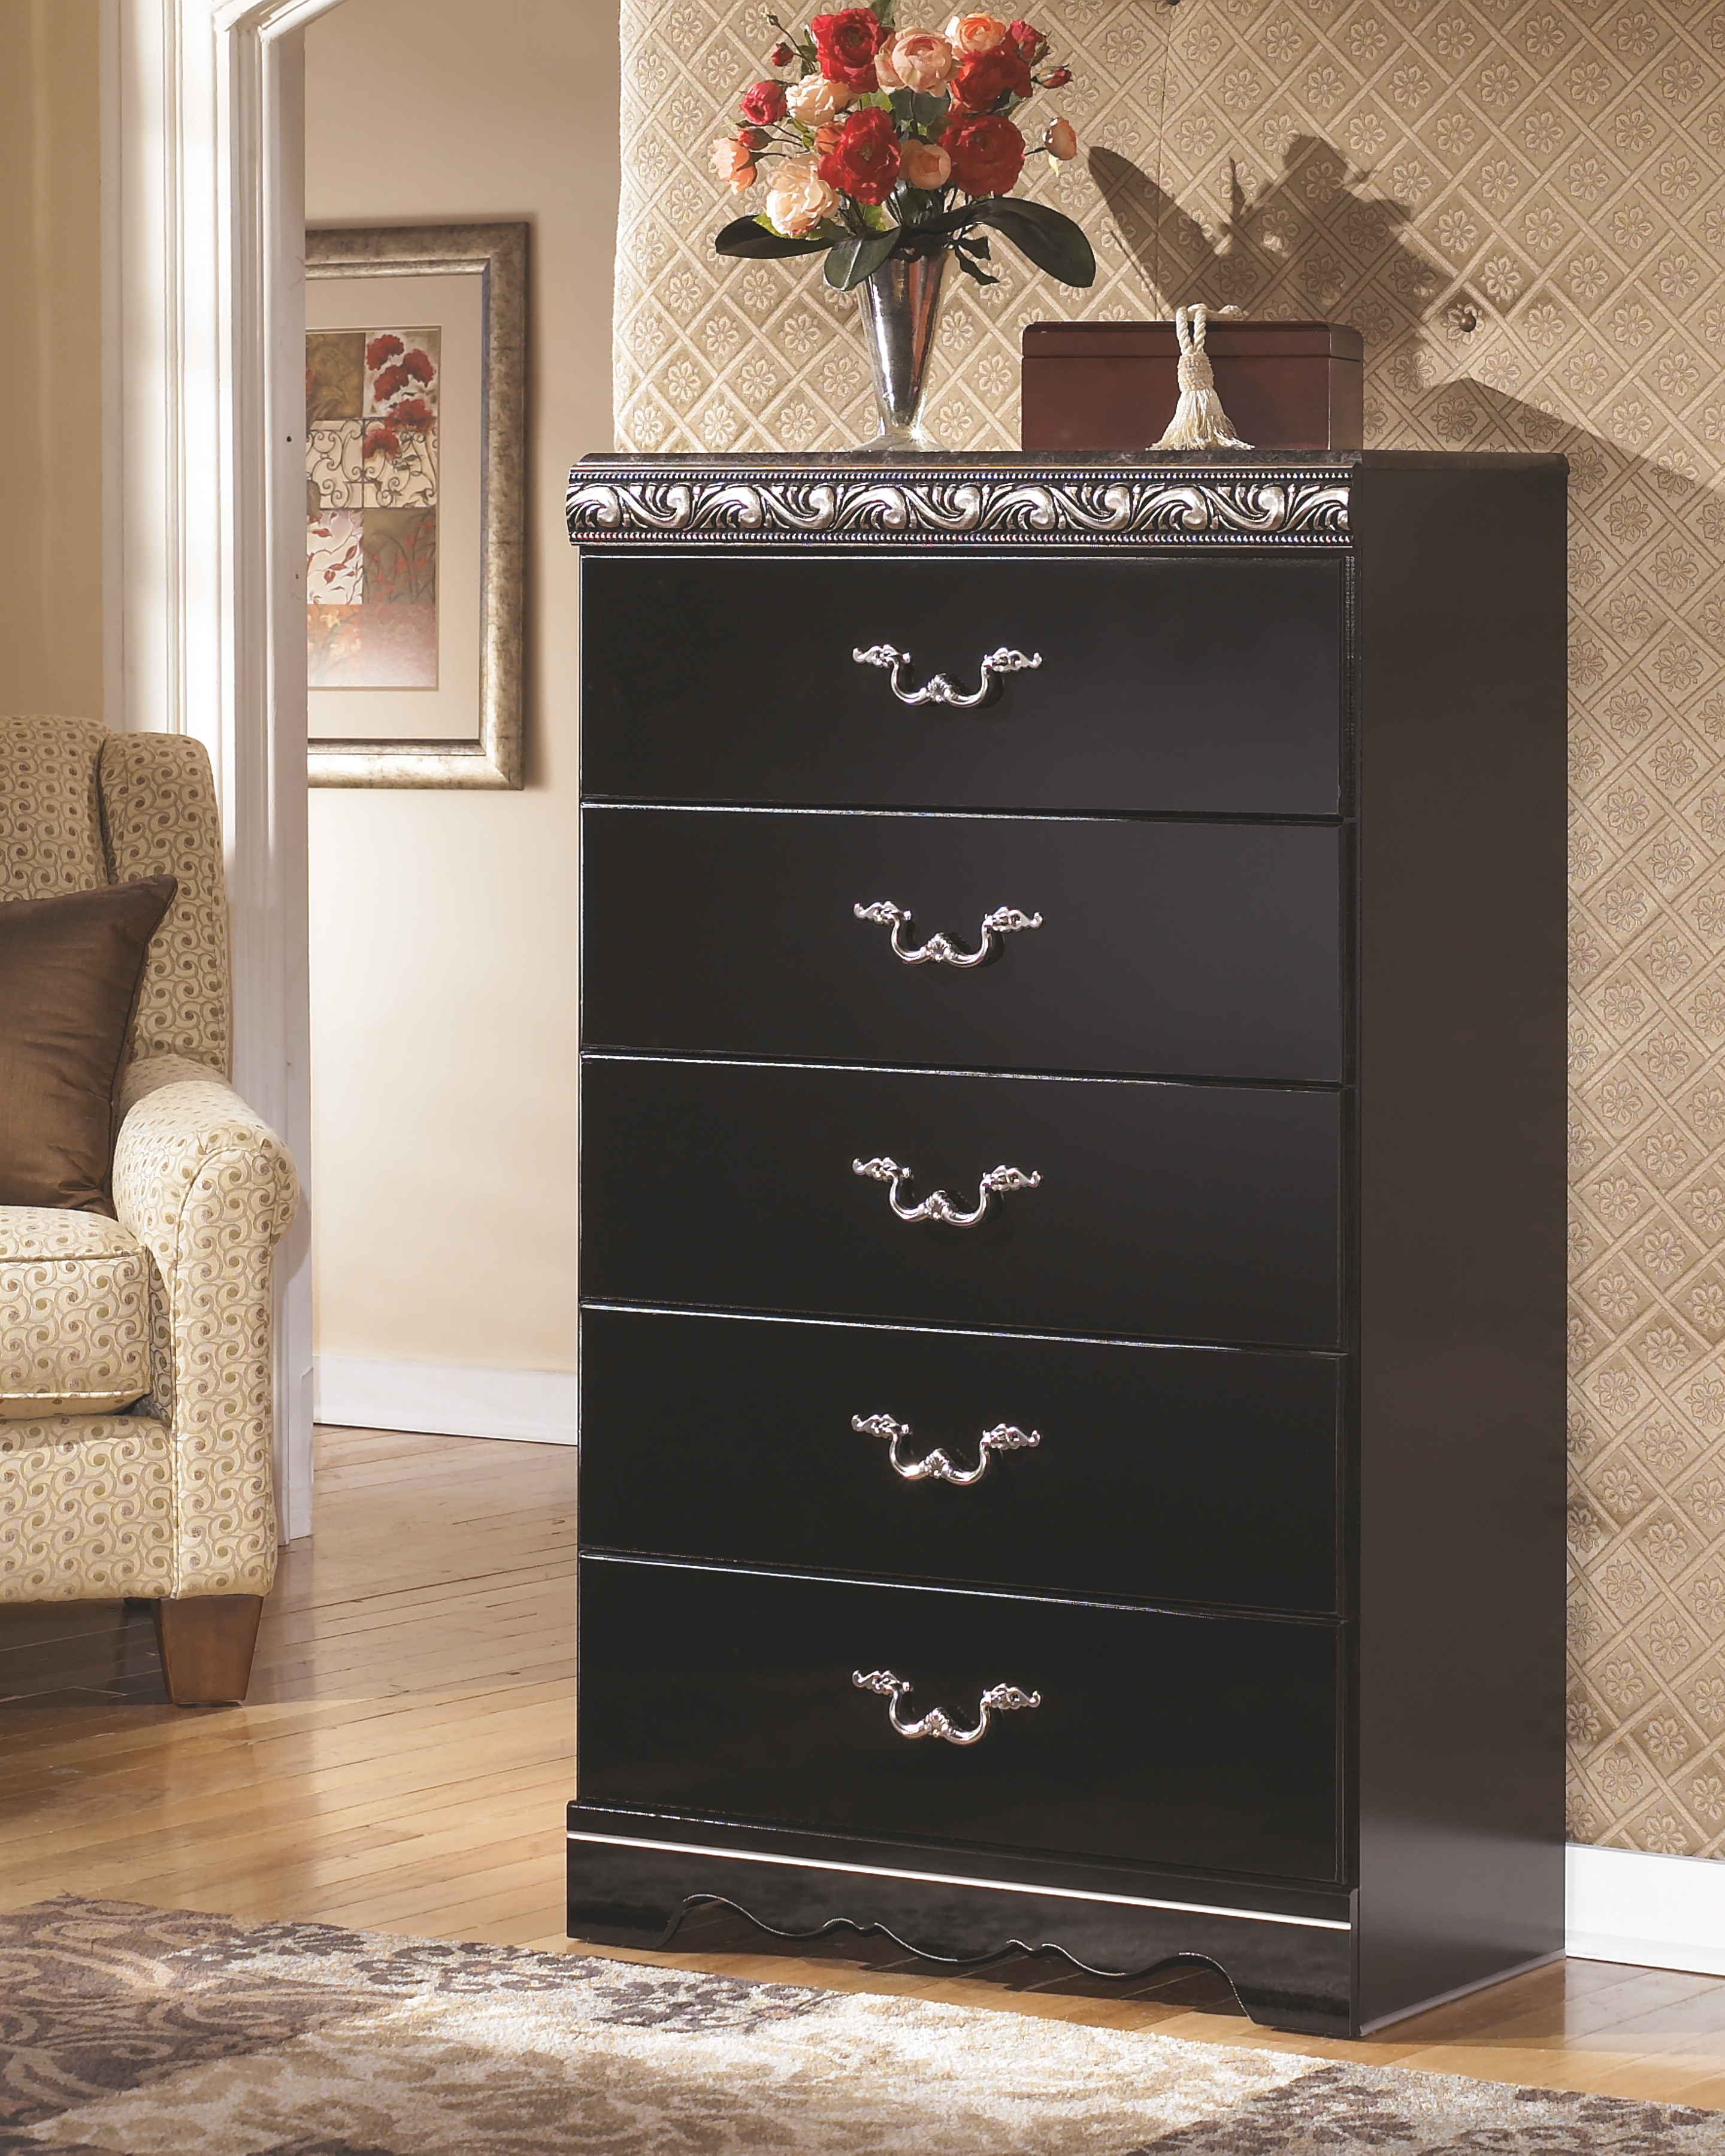 Constellations Chest Of Drawers Black Ashley Furniture Bedroom Sleigh Bedroom Set Ashley Furniture Outlet [ 3600 x 2880 Pixel ]